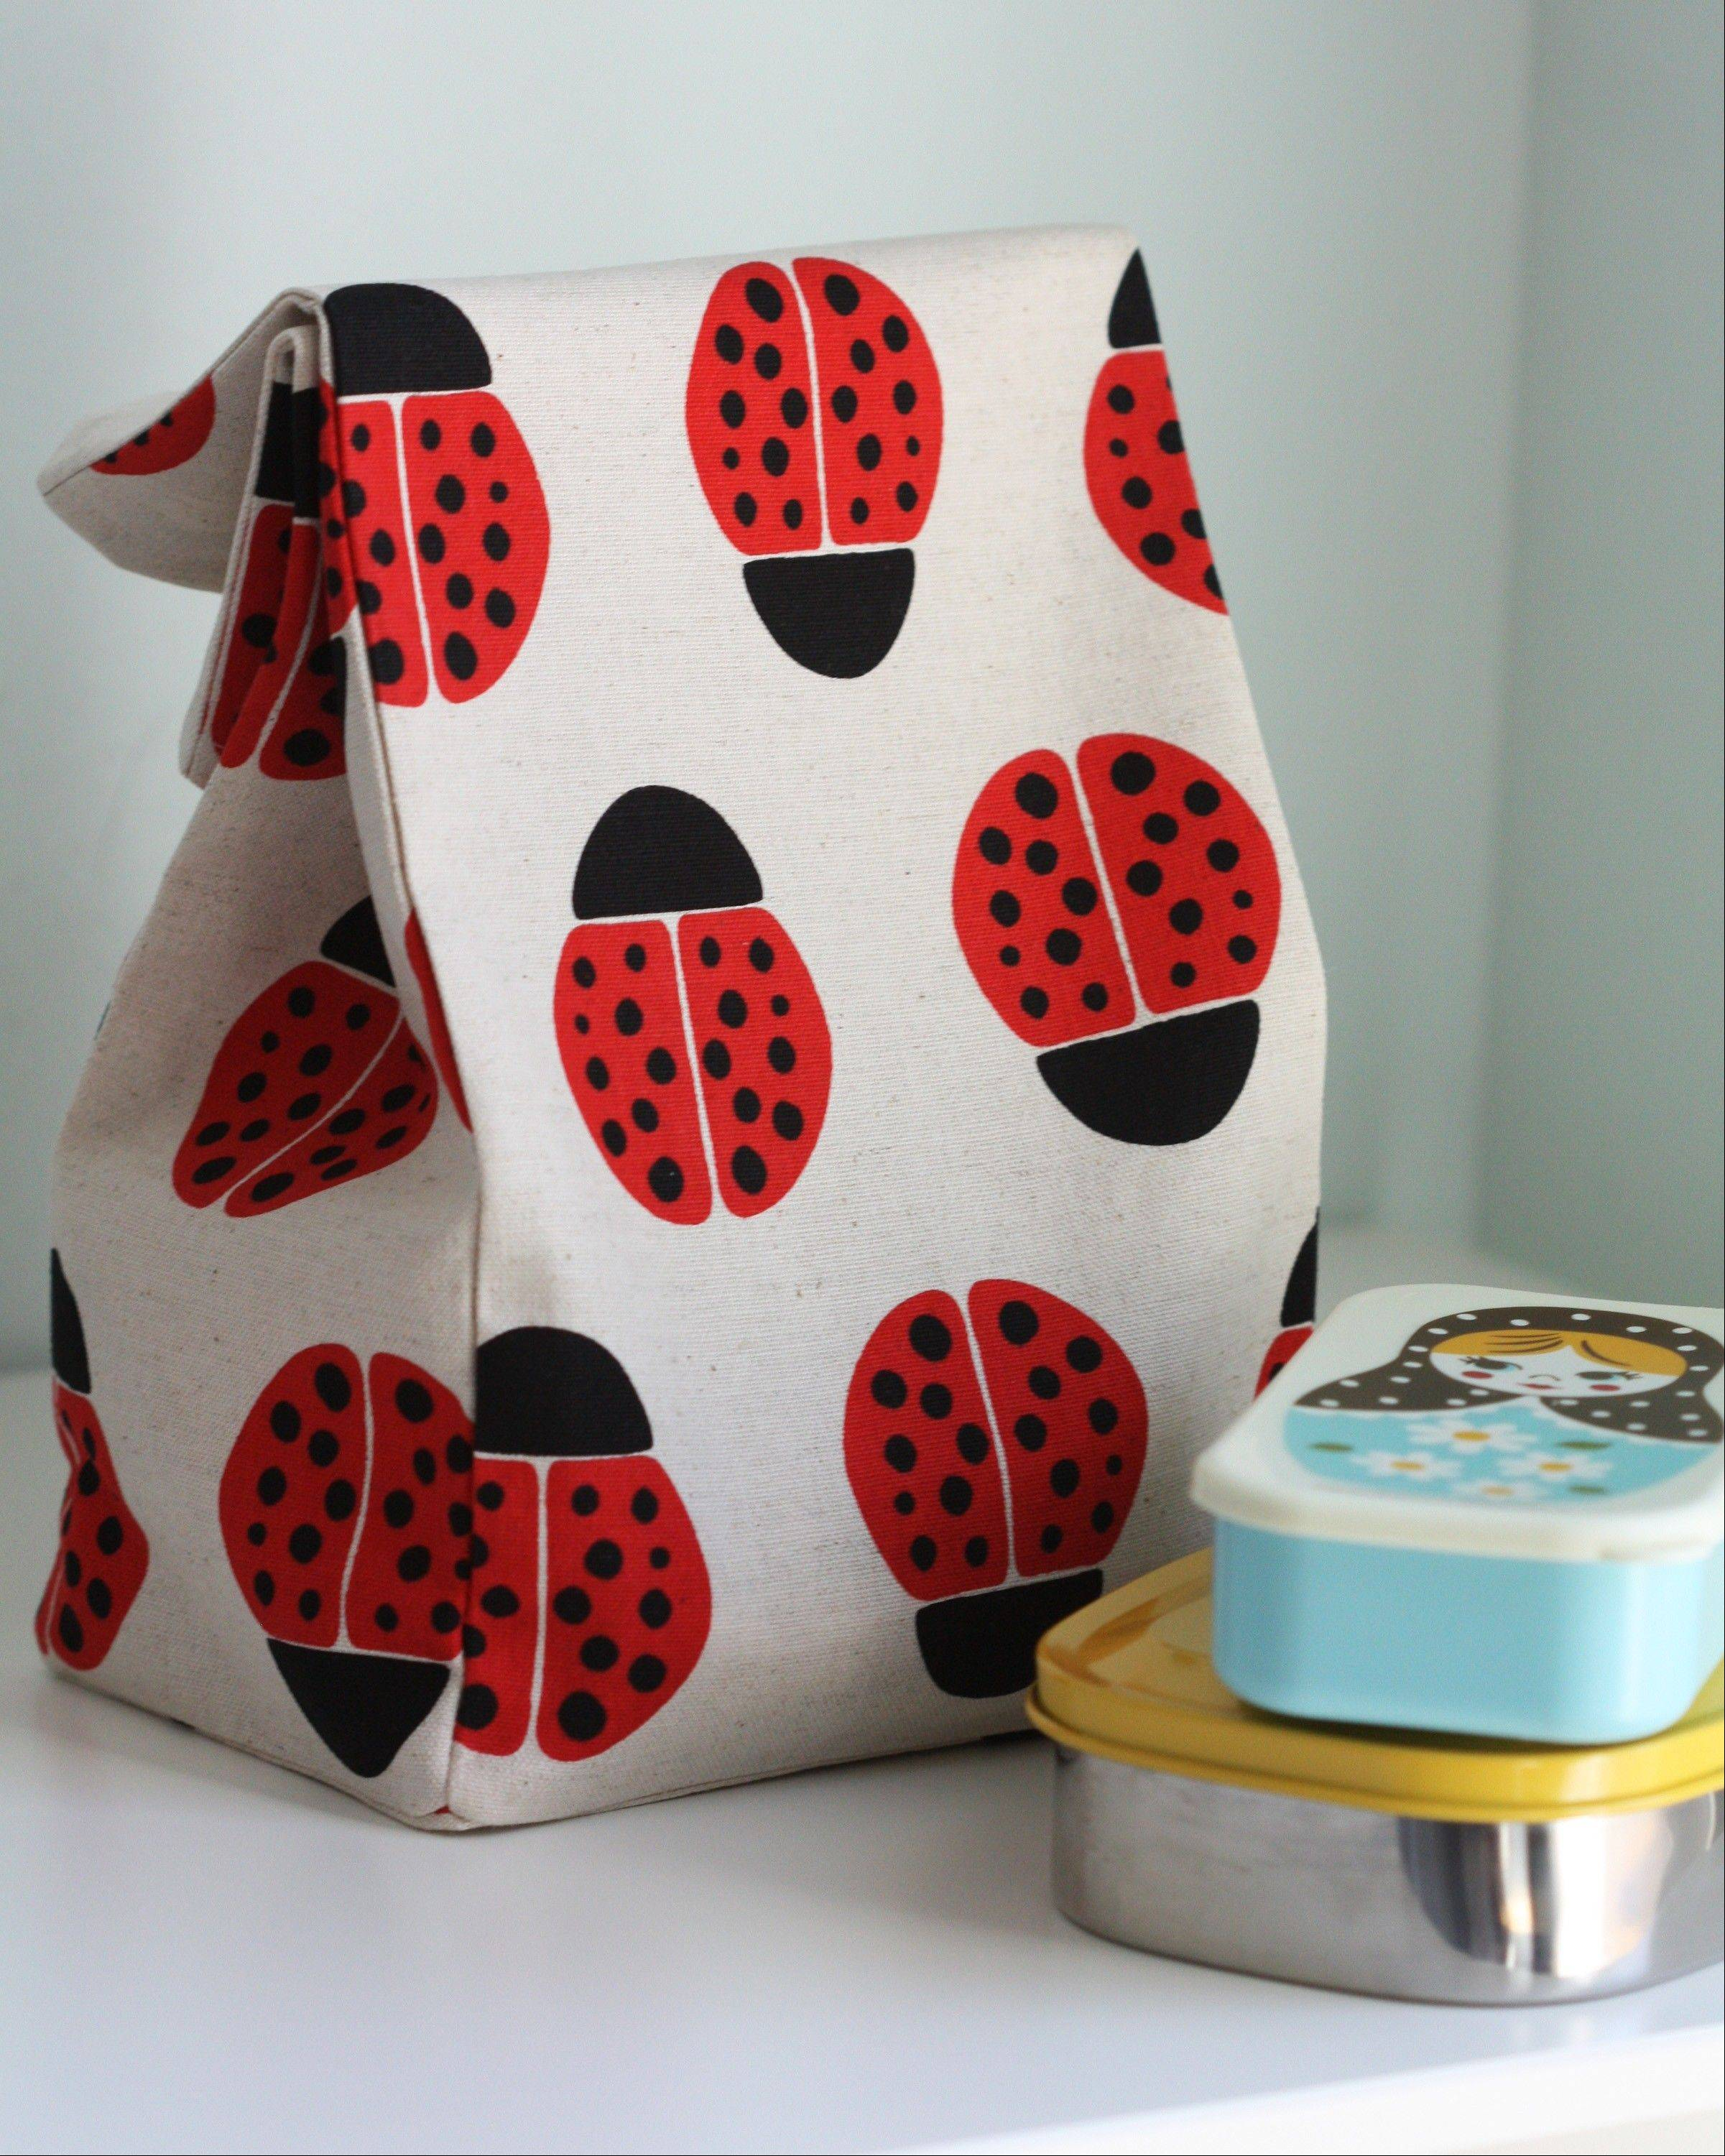 A bag sewn by Ellen Baker in a Ladybug print fabric she designed for the Japanese company, Kokka, is now in quilt shops in January 2013. Baker used a brown paper bag as a template for this design. She is the author of the book, �1, 2, 3 Sew: Build Your Skills with 33 Simple Sewing Projects.�